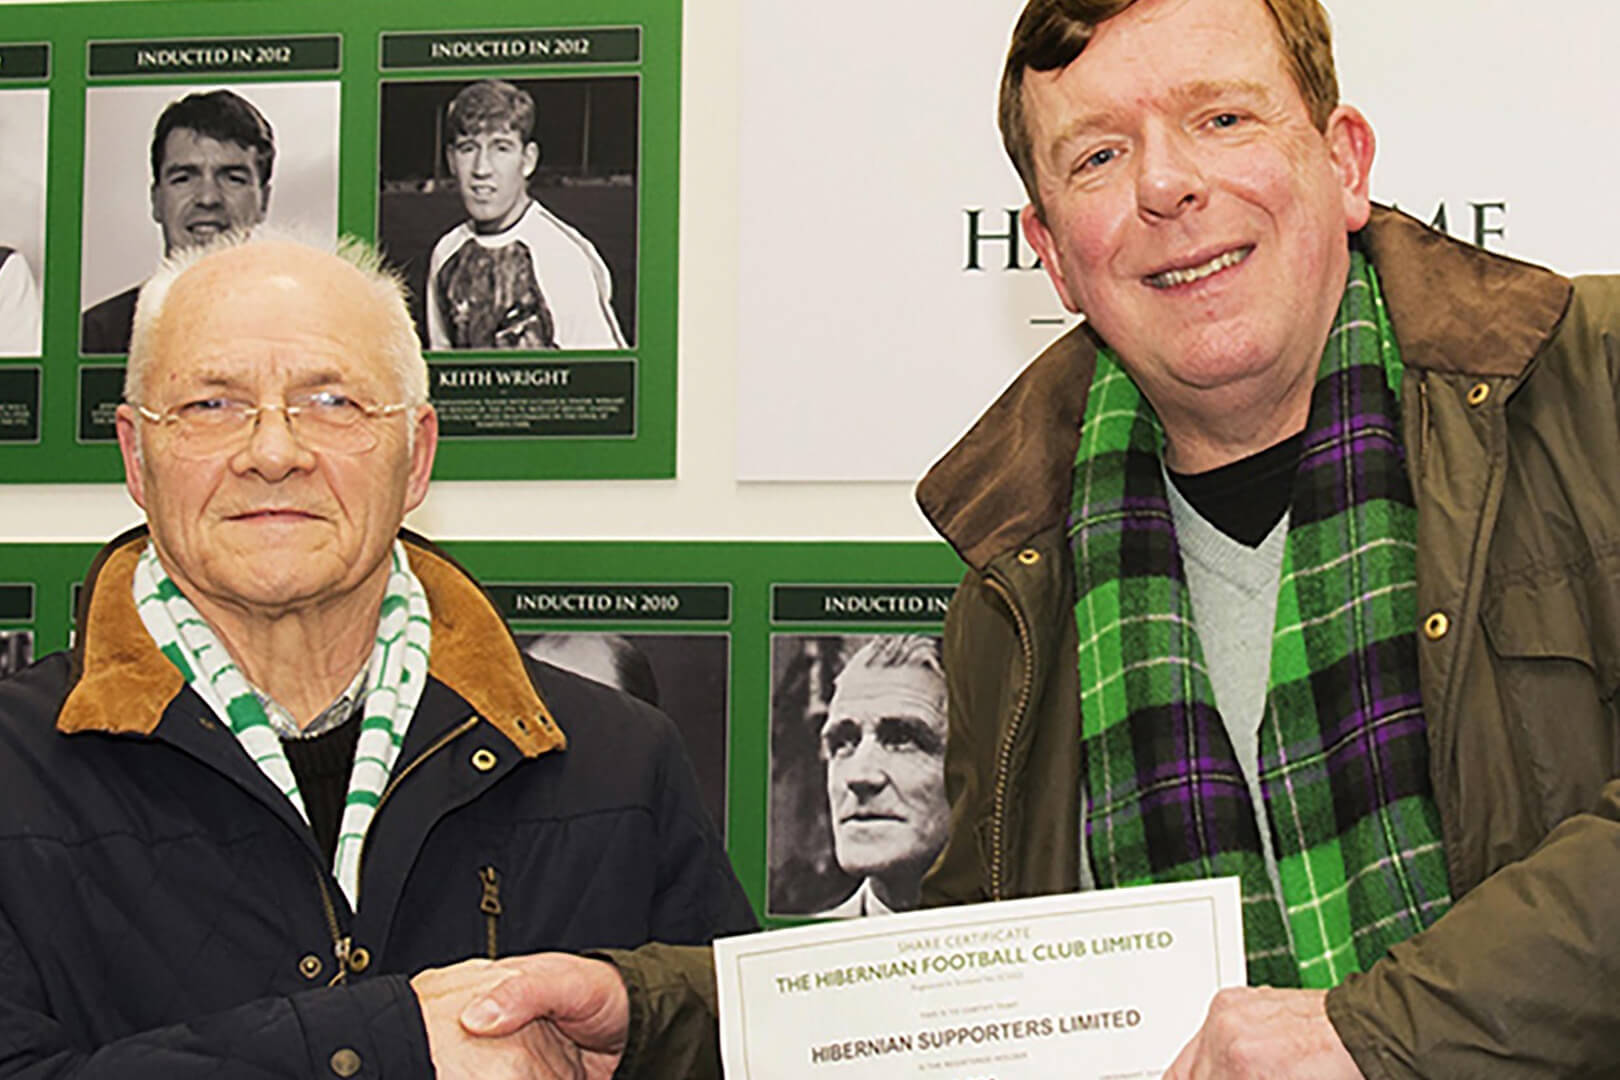 https://hiberniansupporters.co.uk/james-robertson-gifts-his-hibernian-shares-to-hsl/